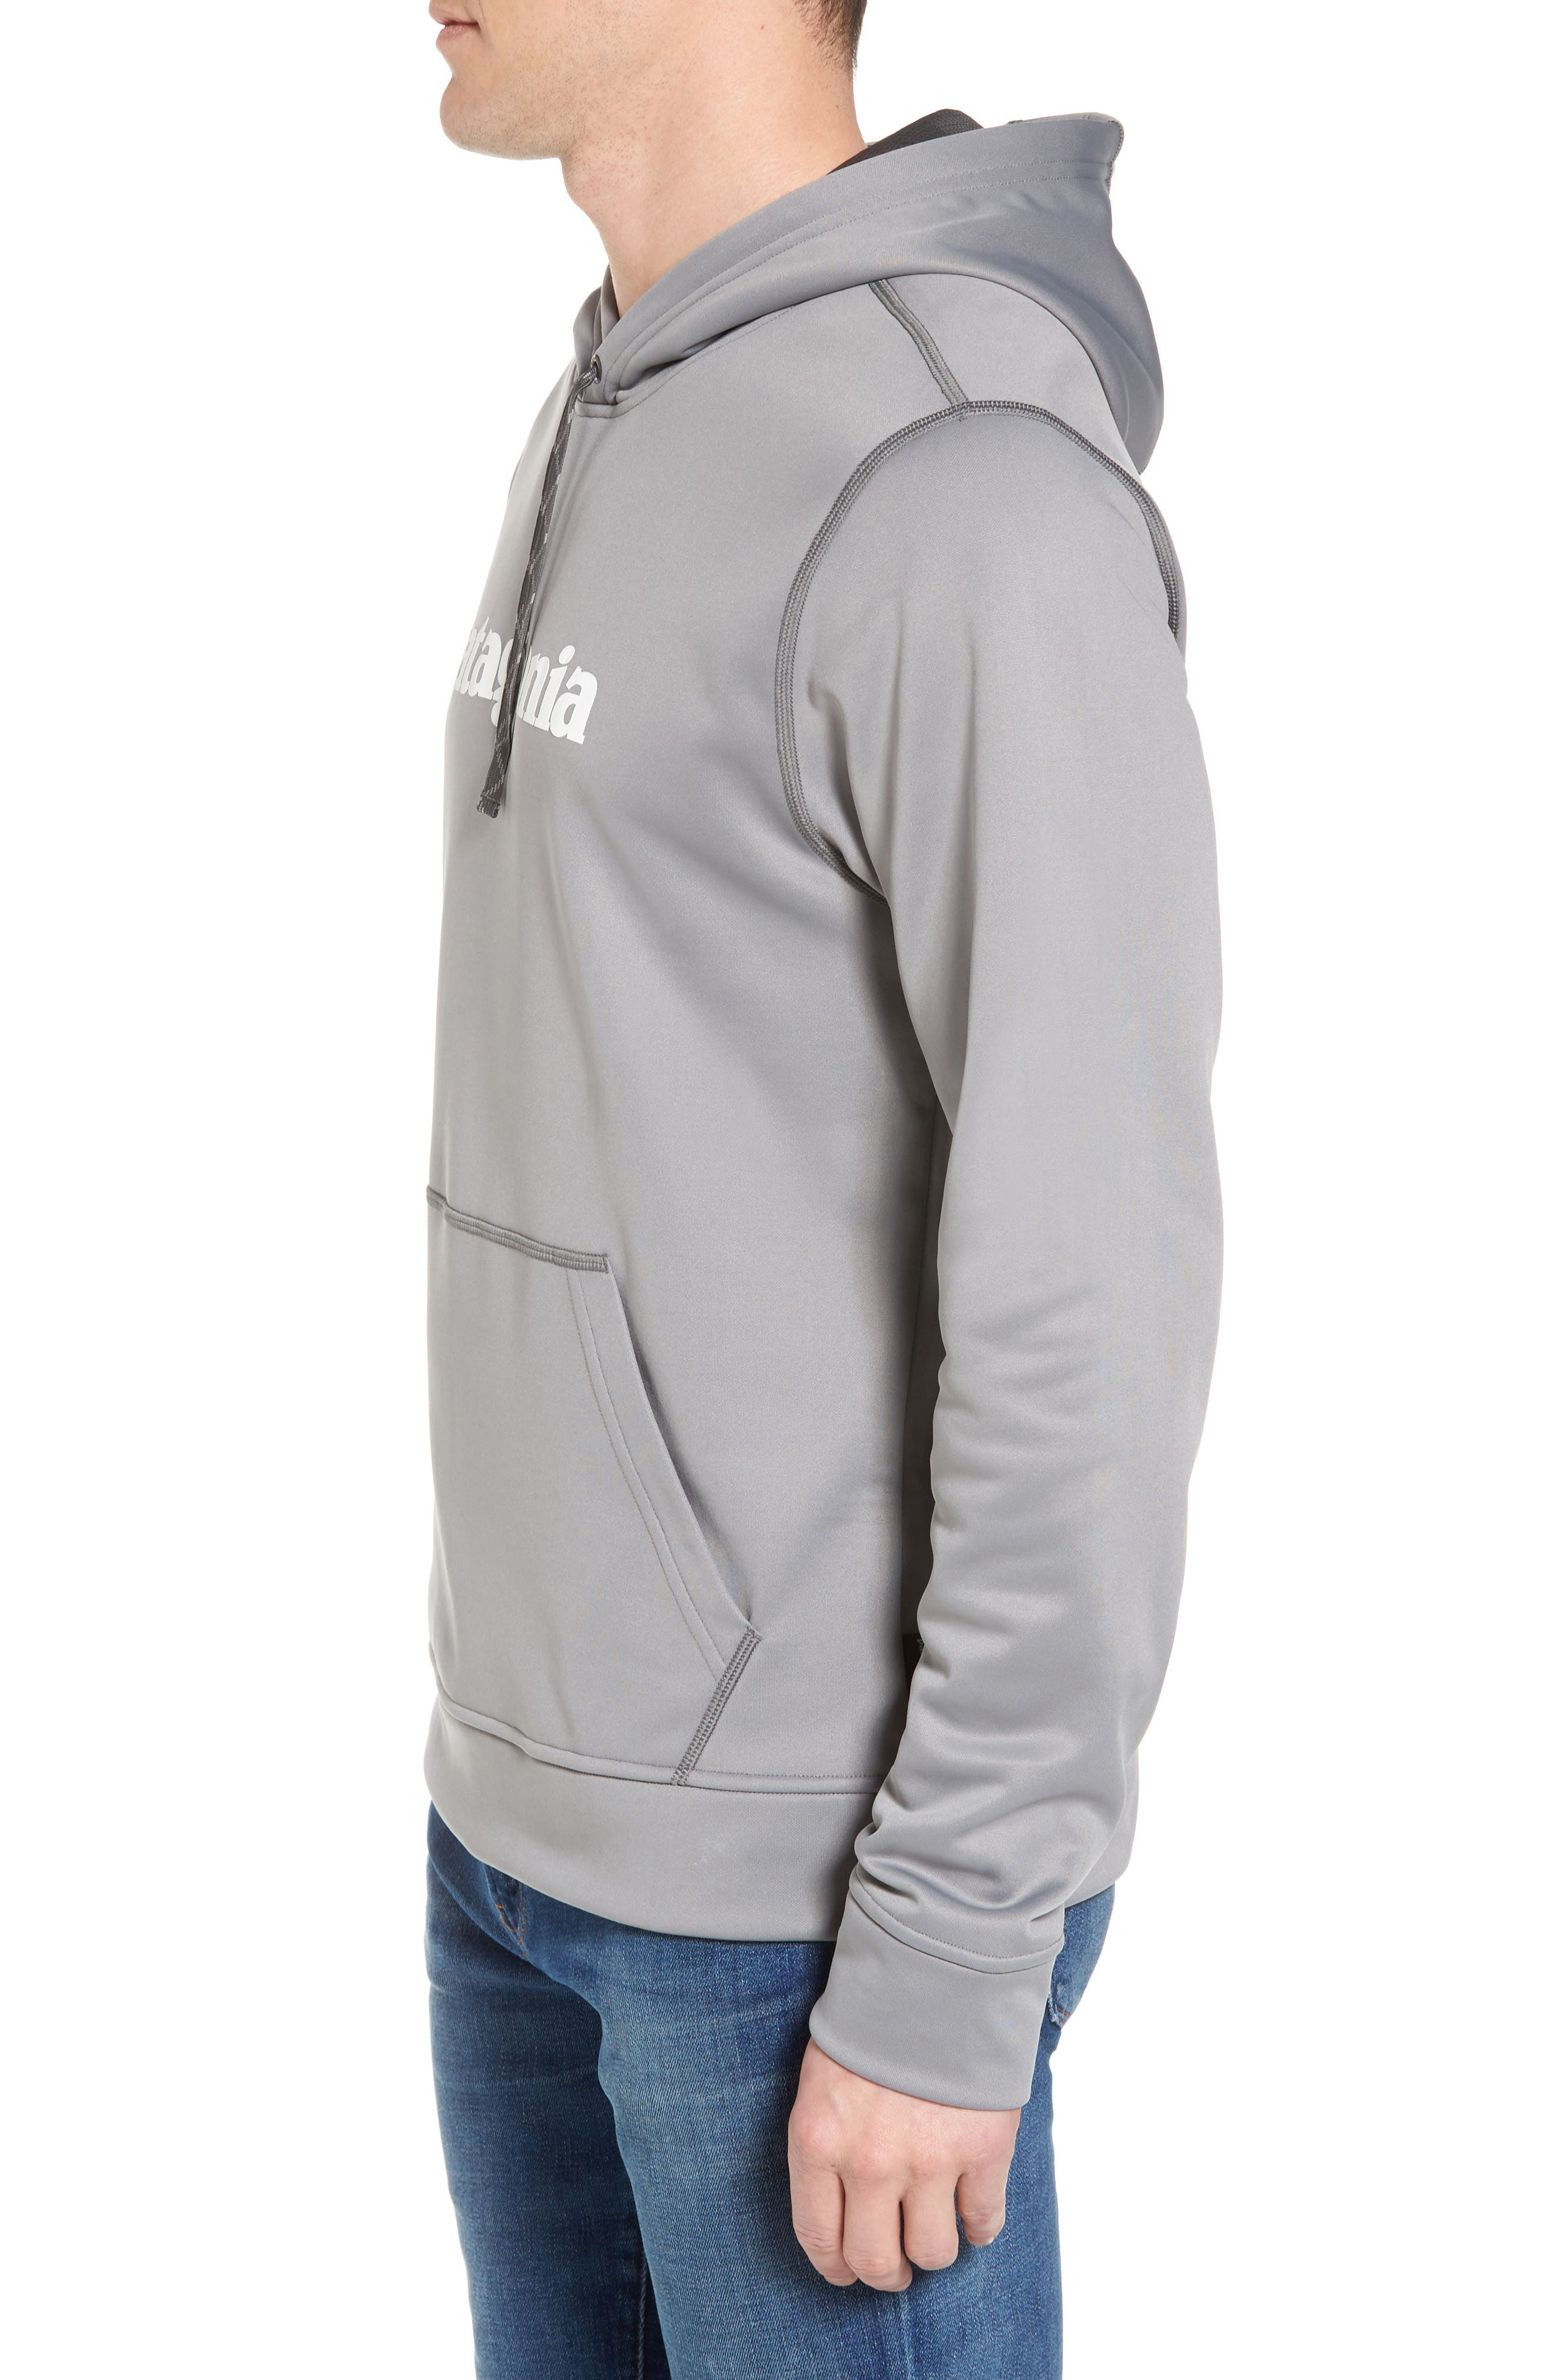 Polycycle Hoodie,                             Alternate thumbnail 3, color,                             020